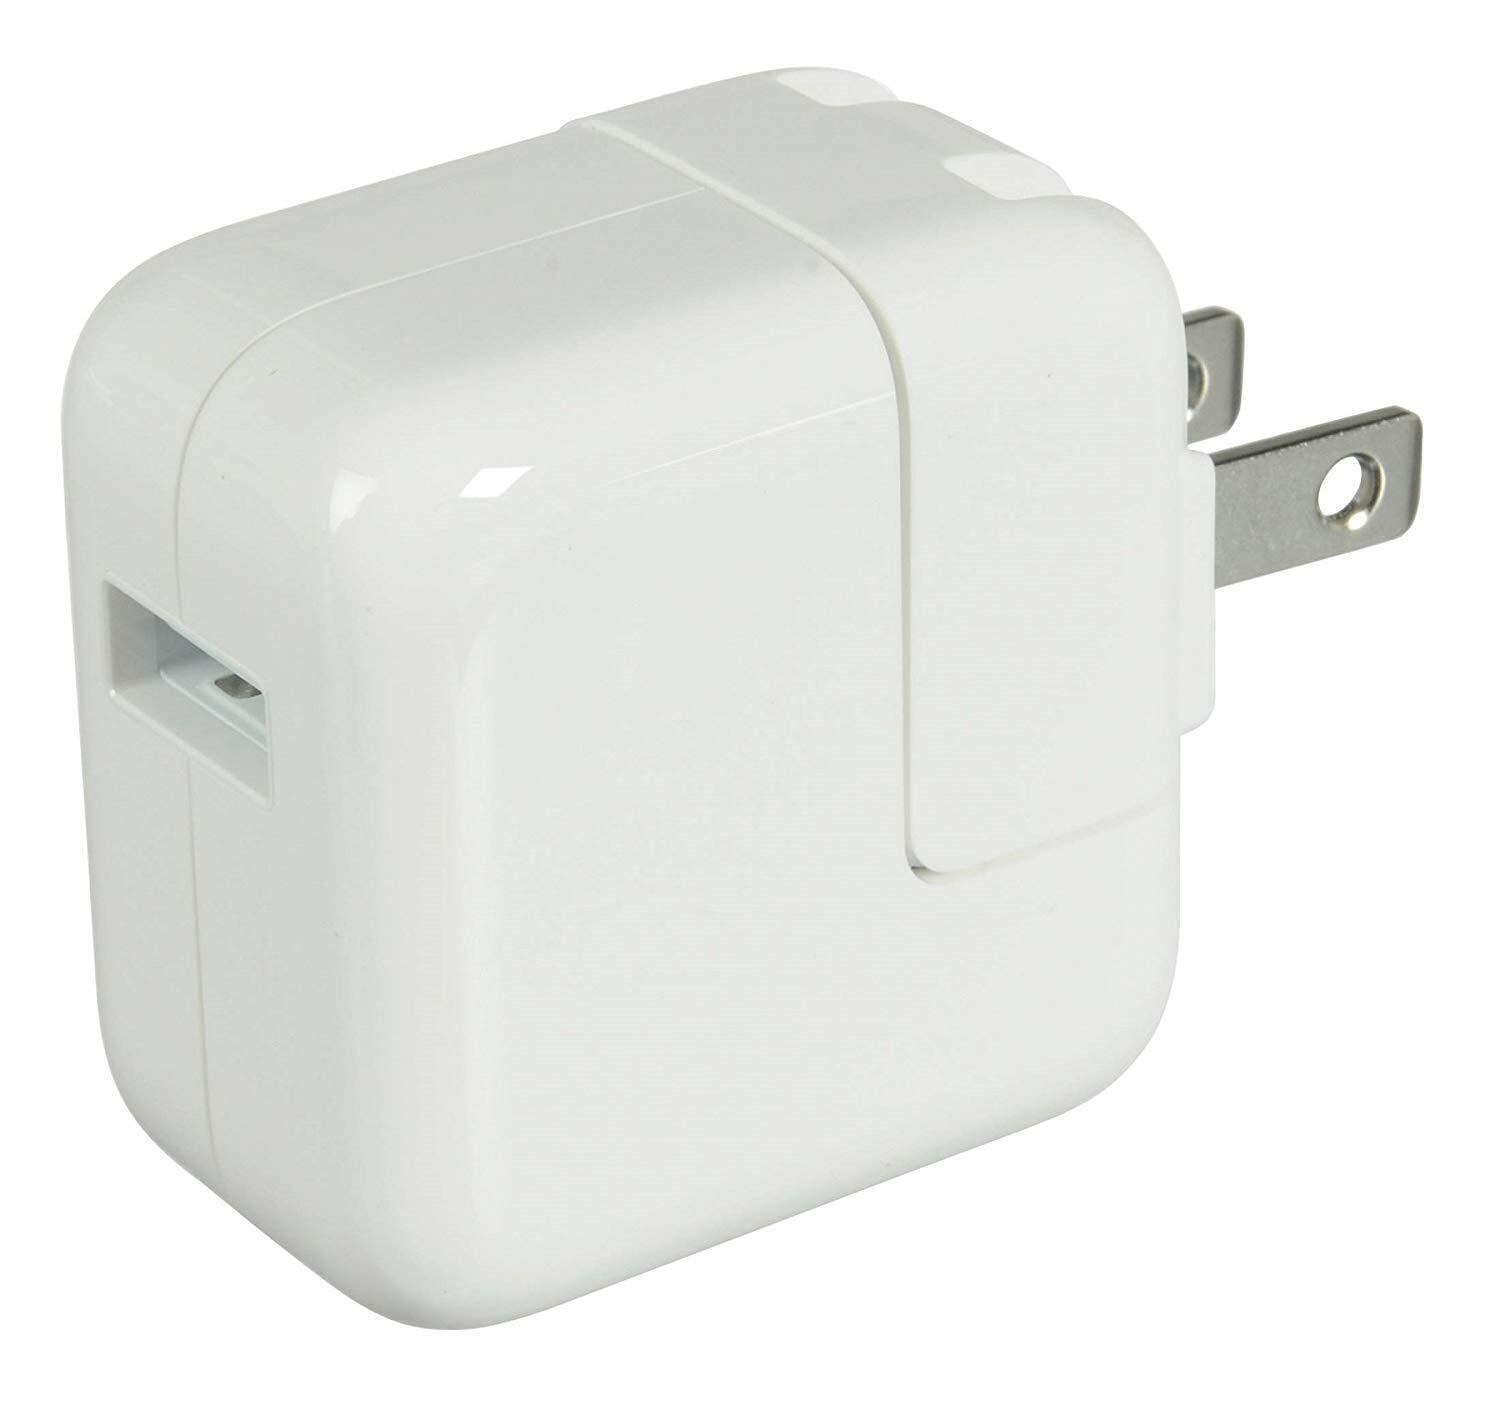 Original 12W - 10W USB Power Adapter Wall Charger for Apple